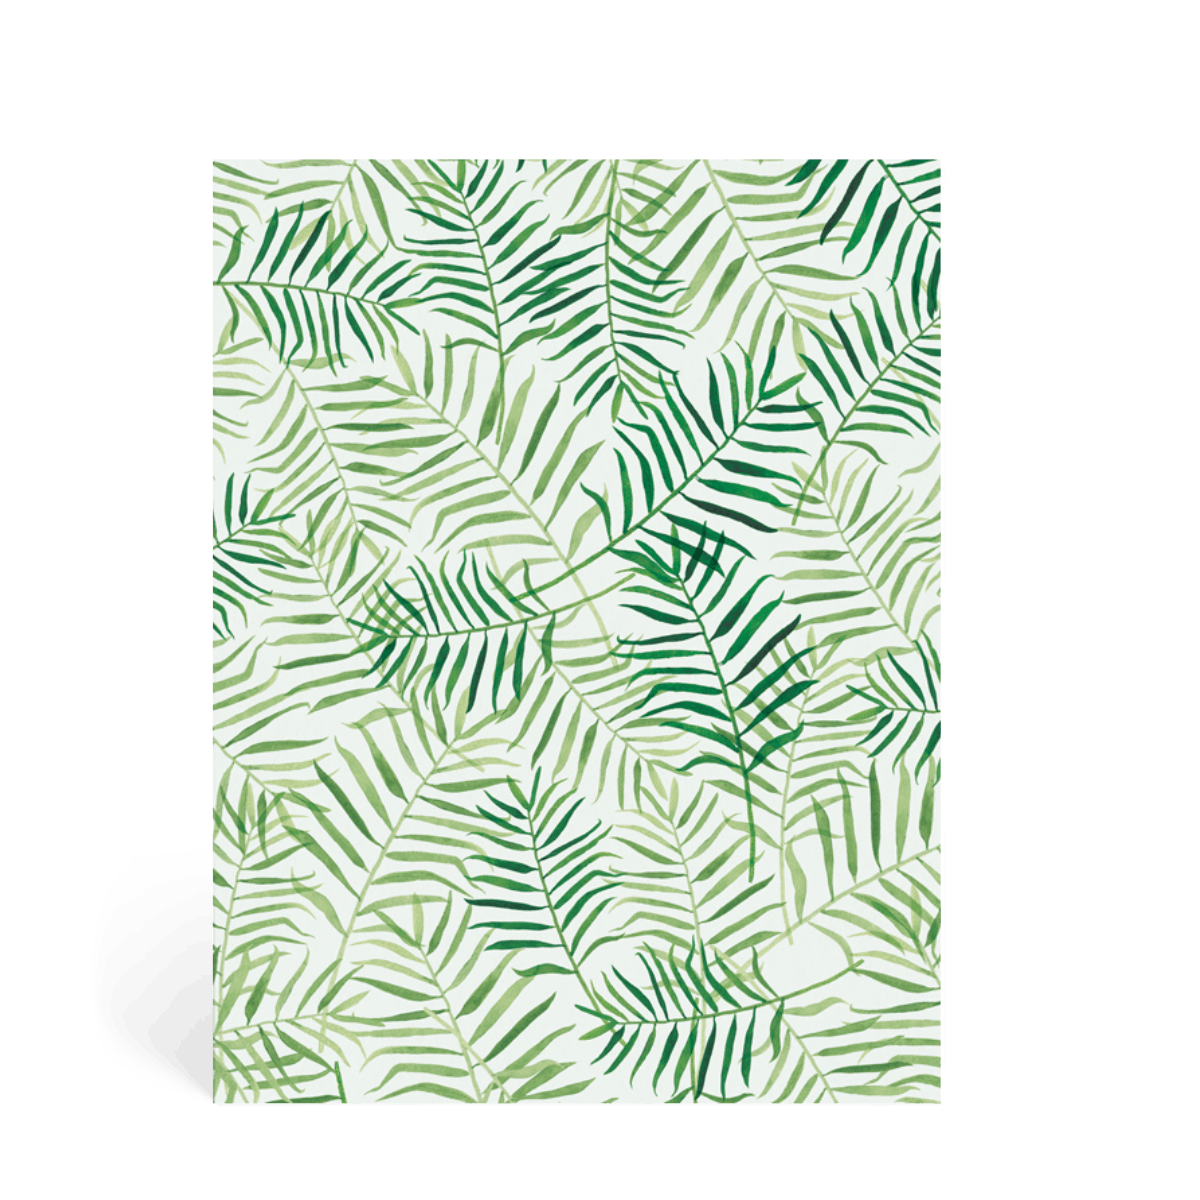 Https%3a%2f%2fwww.papier.com%2fproduct image%2f43238%2f31%2fpalm fronds 11015 back 1534329392.png?ixlib=rb 1.1